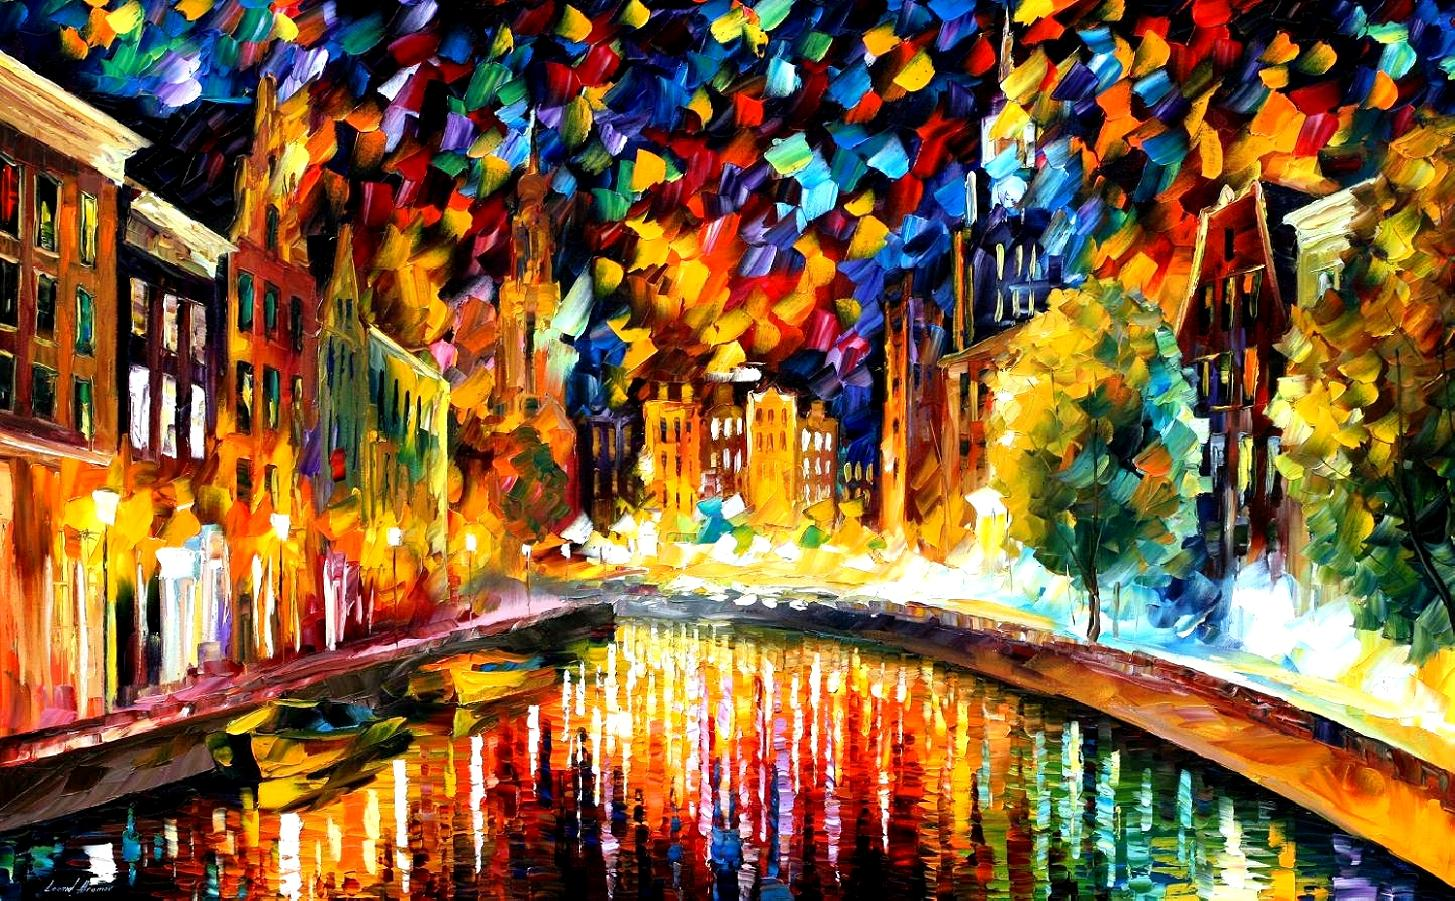 coming back amsterdam palette knife oil painting on canvas by leonid afremov size 24 x40. Black Bedroom Furniture Sets. Home Design Ideas